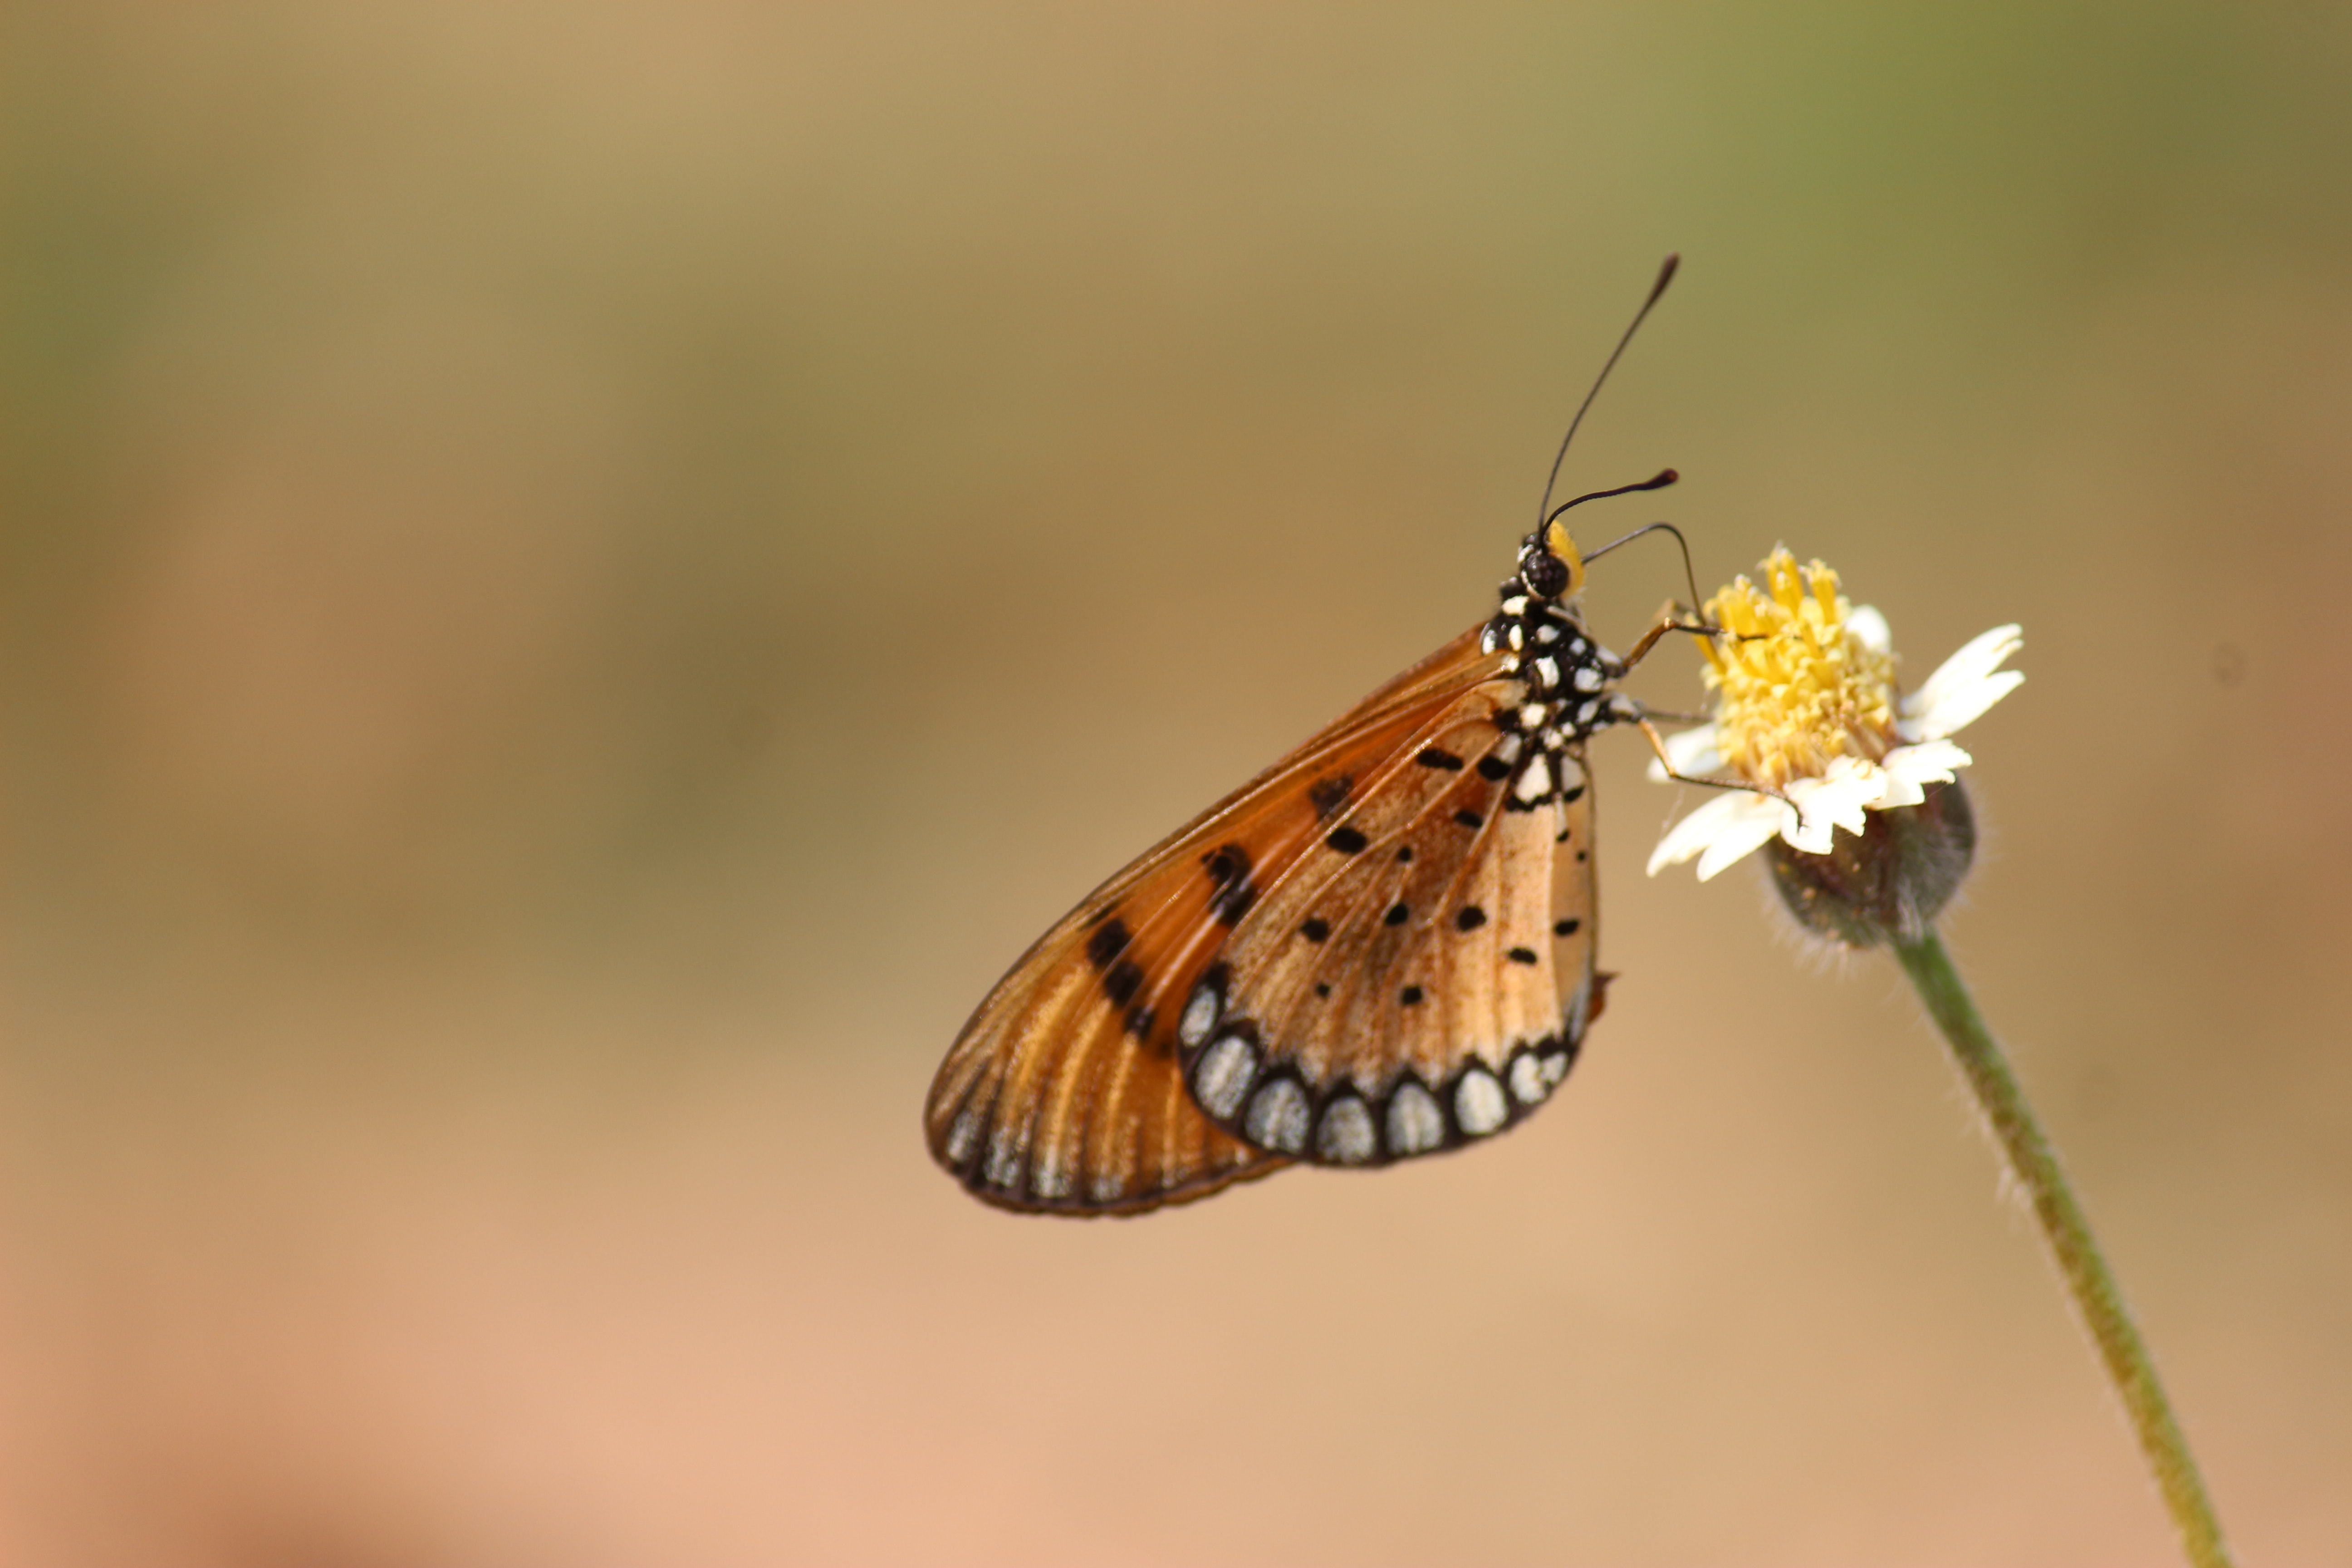 Brown and black butterfly on white petaled flower photo